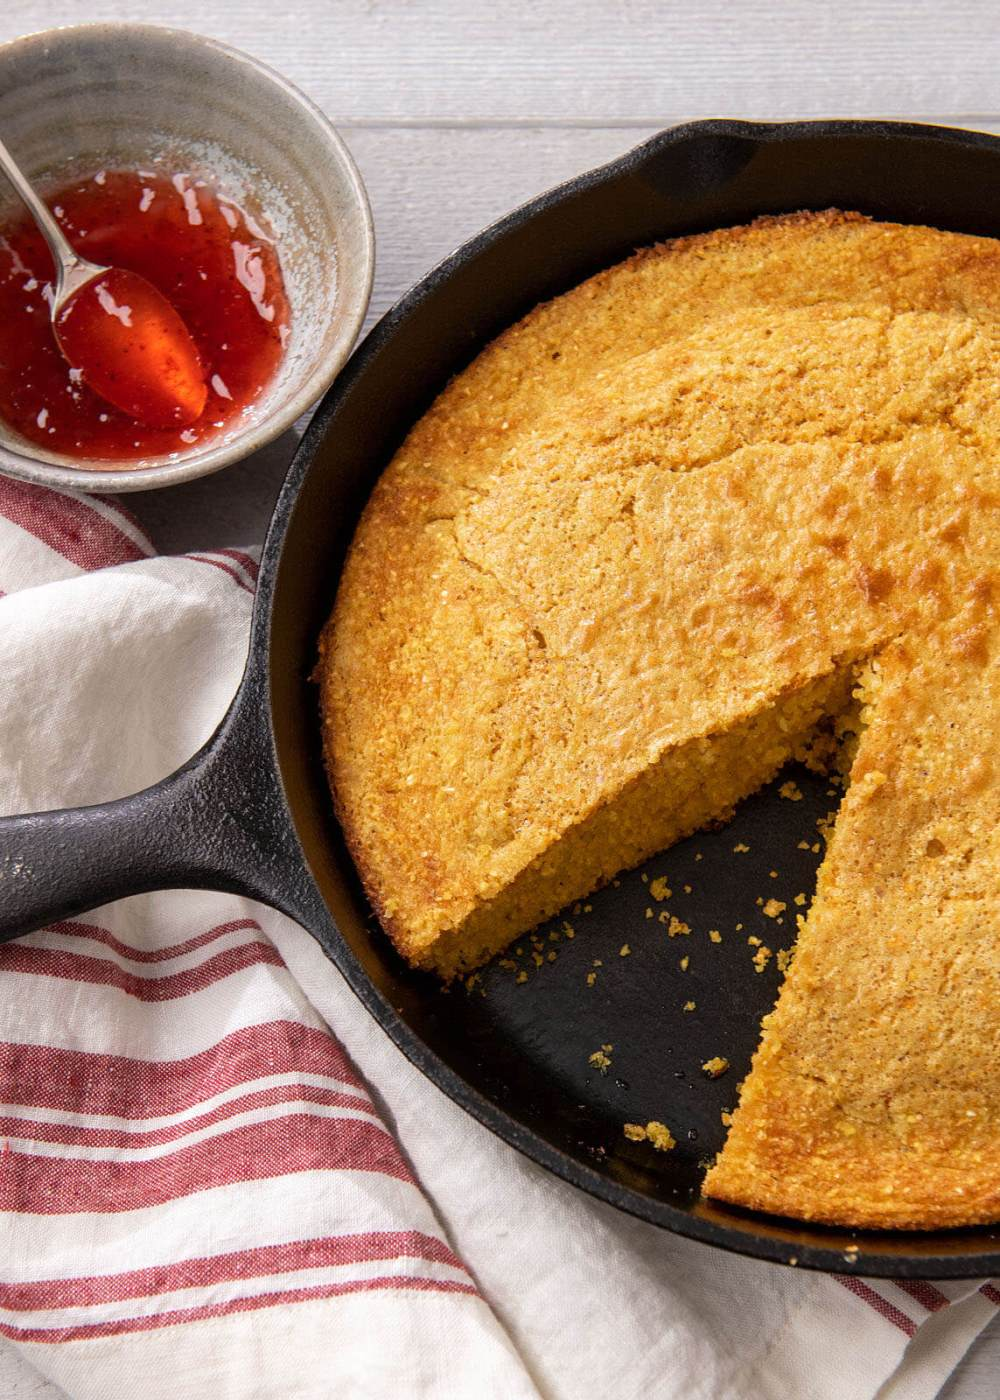 """The magic begins when you pour the simple batter into a hot skillet. This unique recipe isnaturally gluten-free with a dairy-free option and has been a hit with readers (andmy family) for years. And have you noticed how leftover cornbread always seems dry? There's a great tip for """"refreshing""""it, and I also mention how I enjoy the leftovers as an easy, satisfying breakfast."""